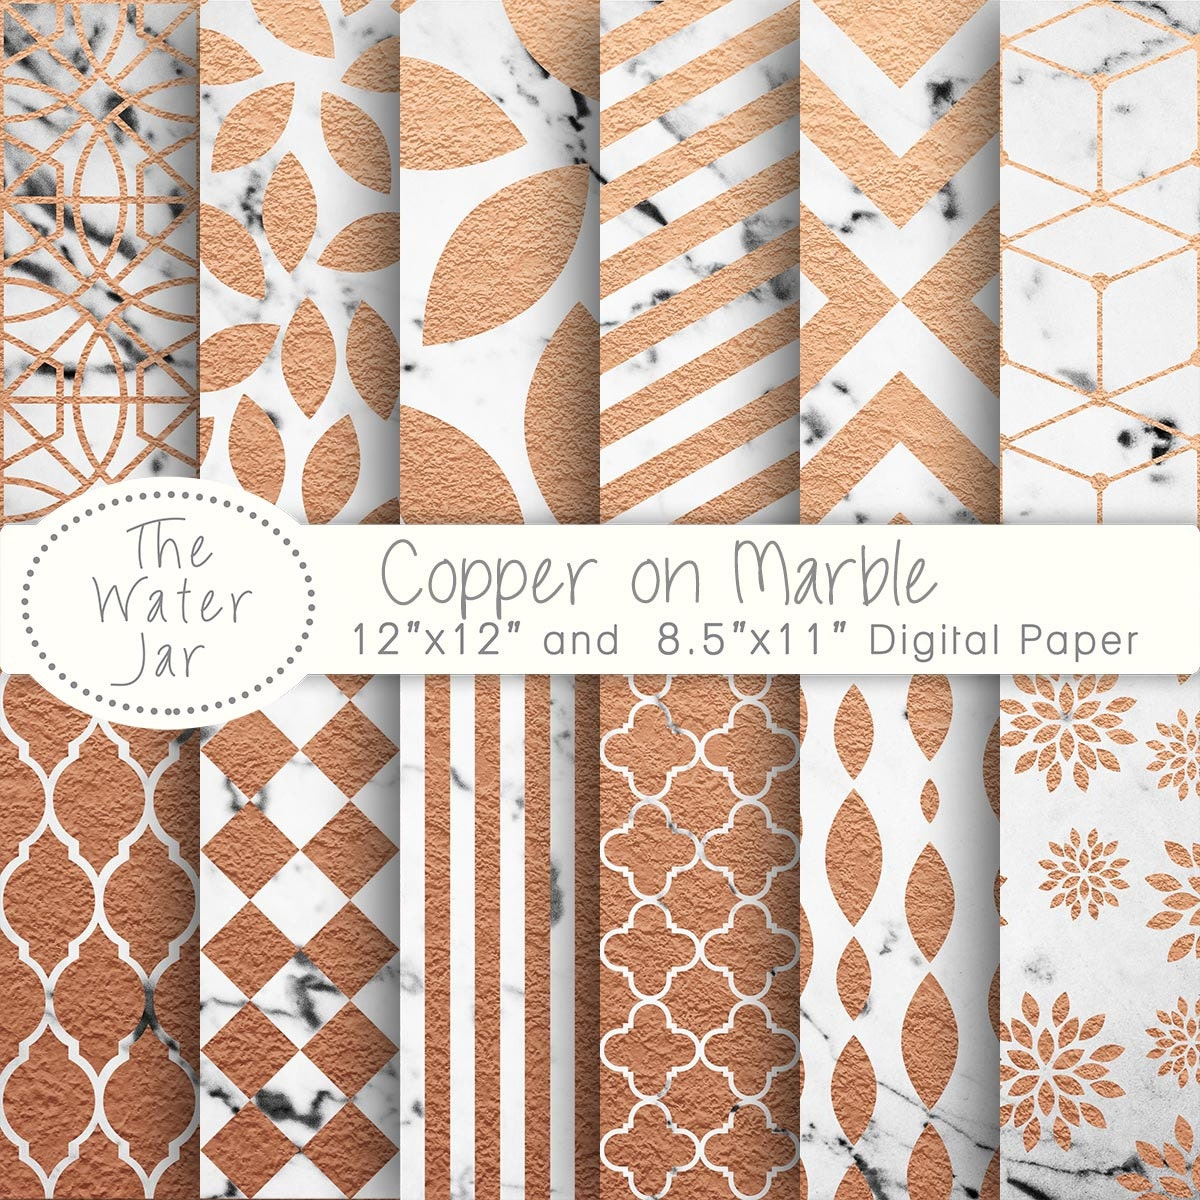 Popular Wallpaper Marble Copper - il_fullxfull  You Should Have_636854.jpg?version\u003d1